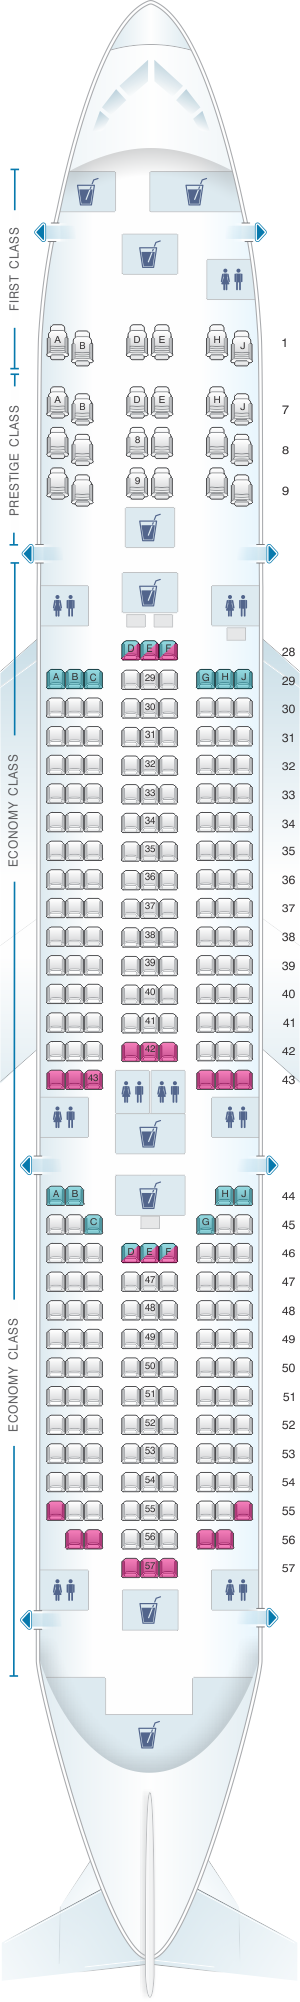 Seat map for Korean Air Boeing B787 9